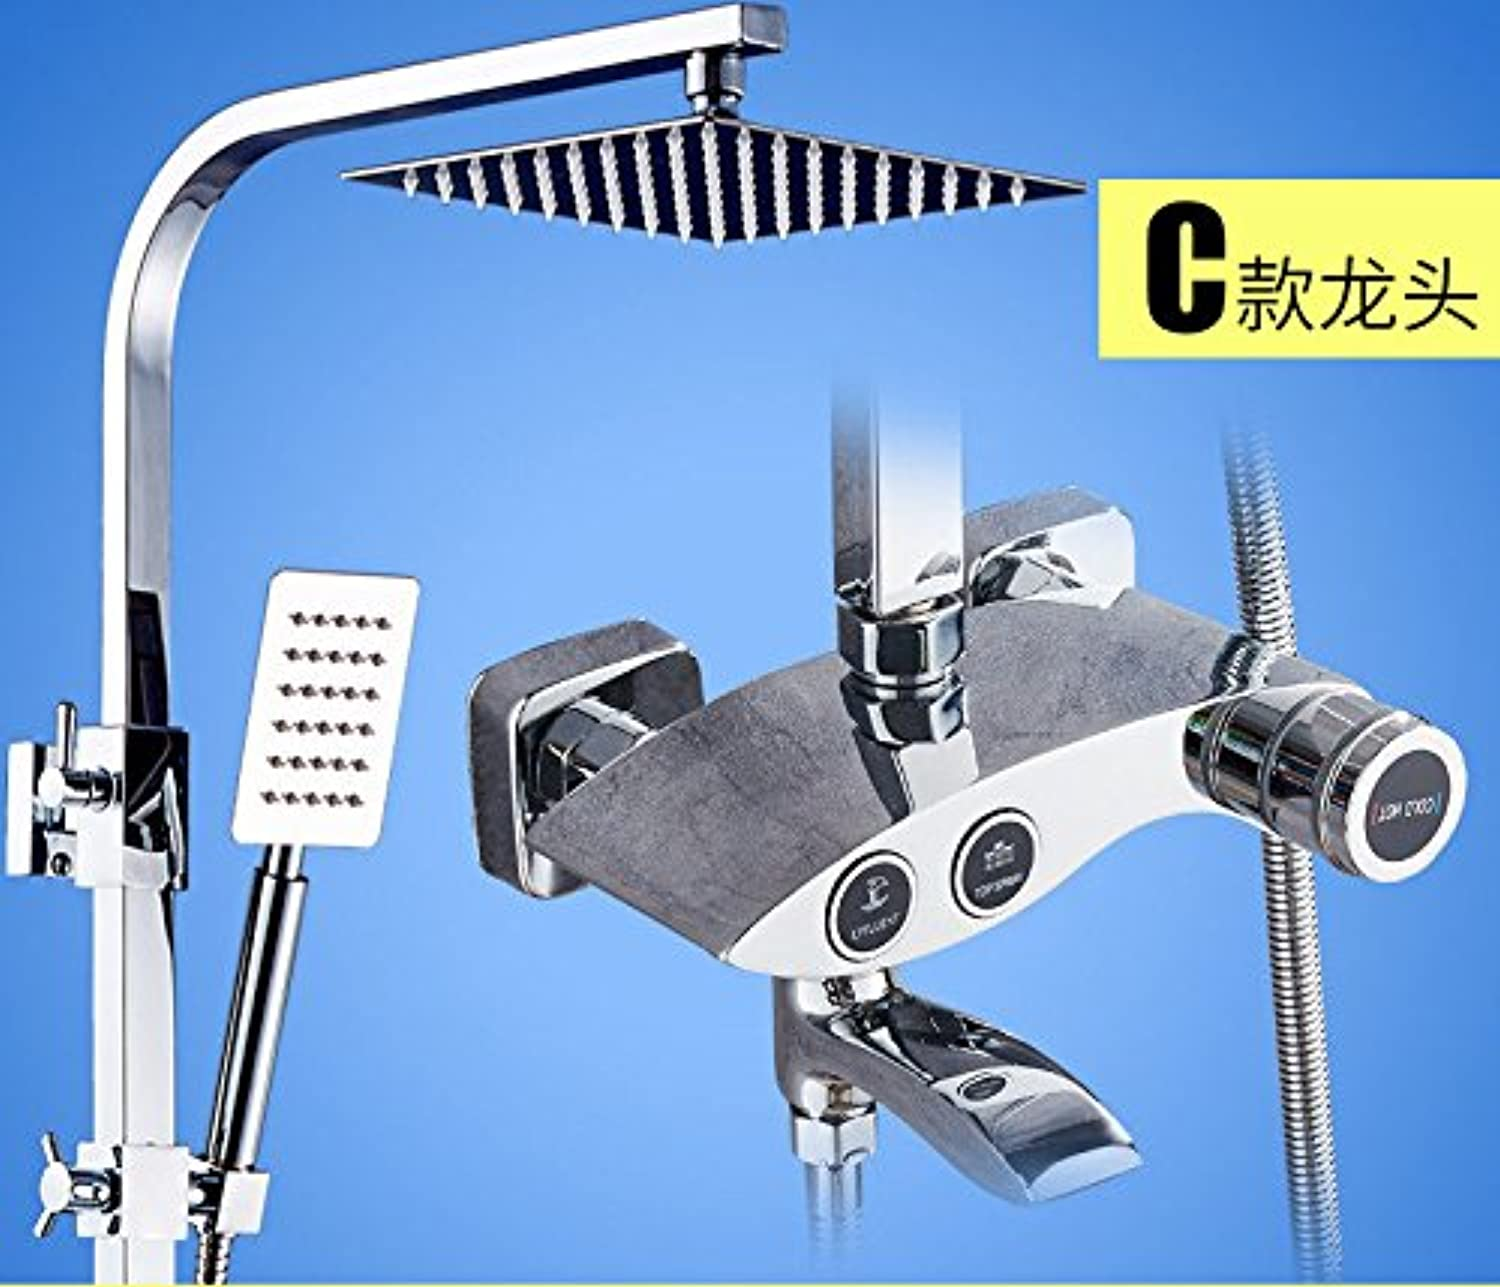 ETERNAL QUALITY Bathroom Sink Basin Tap Brass Mixer Tap Washroom Mixer Faucet Shower Kit Full Copper Water mixing valve faucet bathroom showers, hot and cold shower fauce